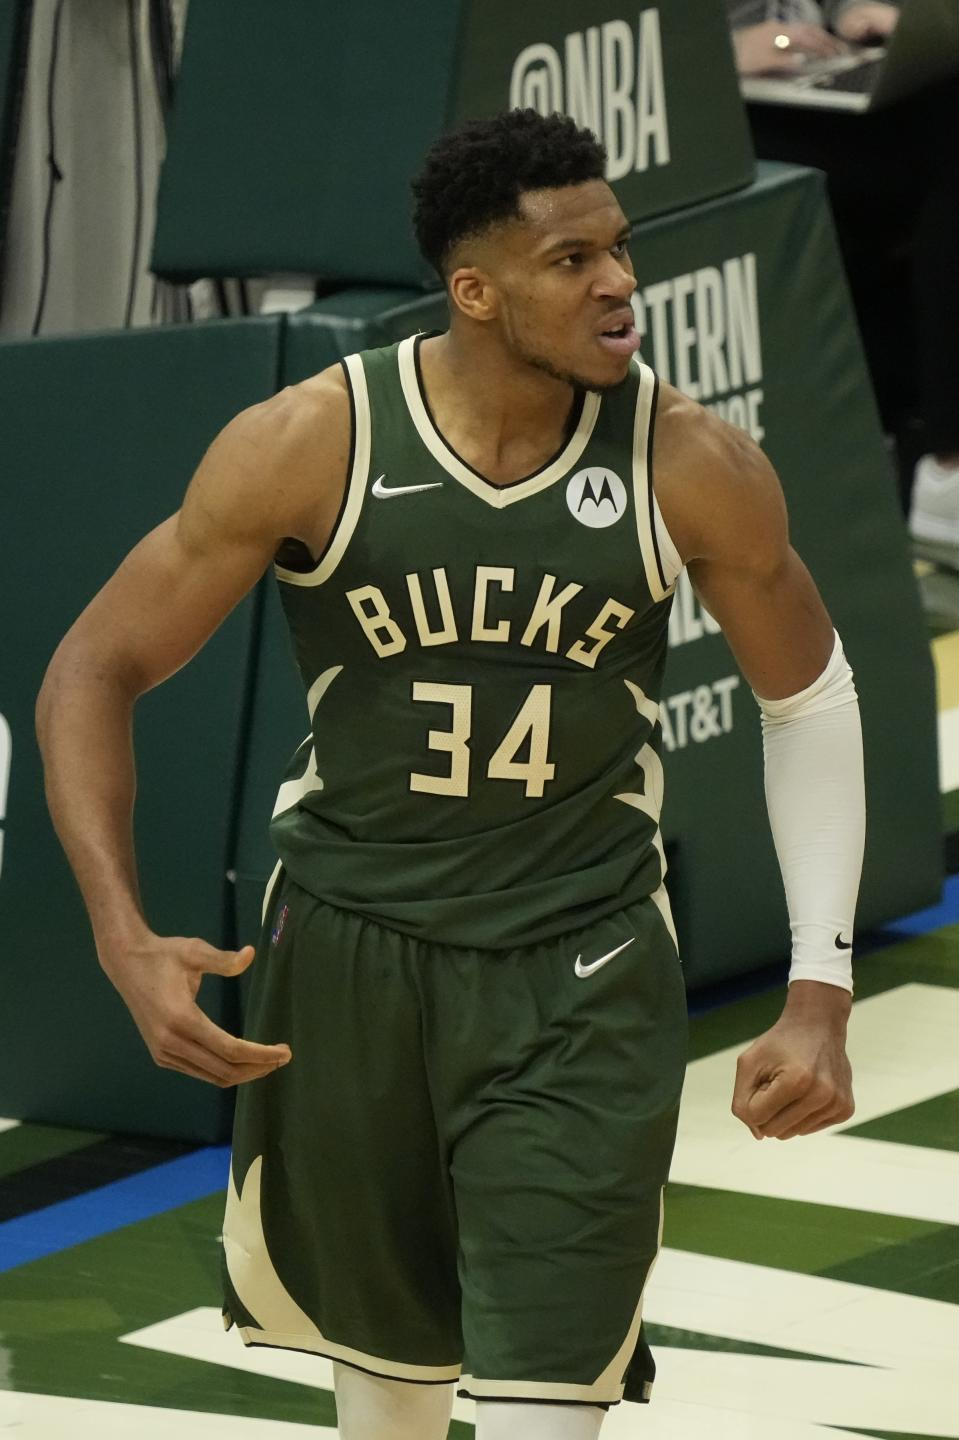 Milwaukee Bucks' Giannis Antetokounmpo reacts after making a shot and being fouled during the second half of Game 1 of the NBA Eastern Conference basketball finals game against the Atlanta Hawks Wednesday, June 23, 2021, in Milwaukee. (AP Photo/Morry Gash)